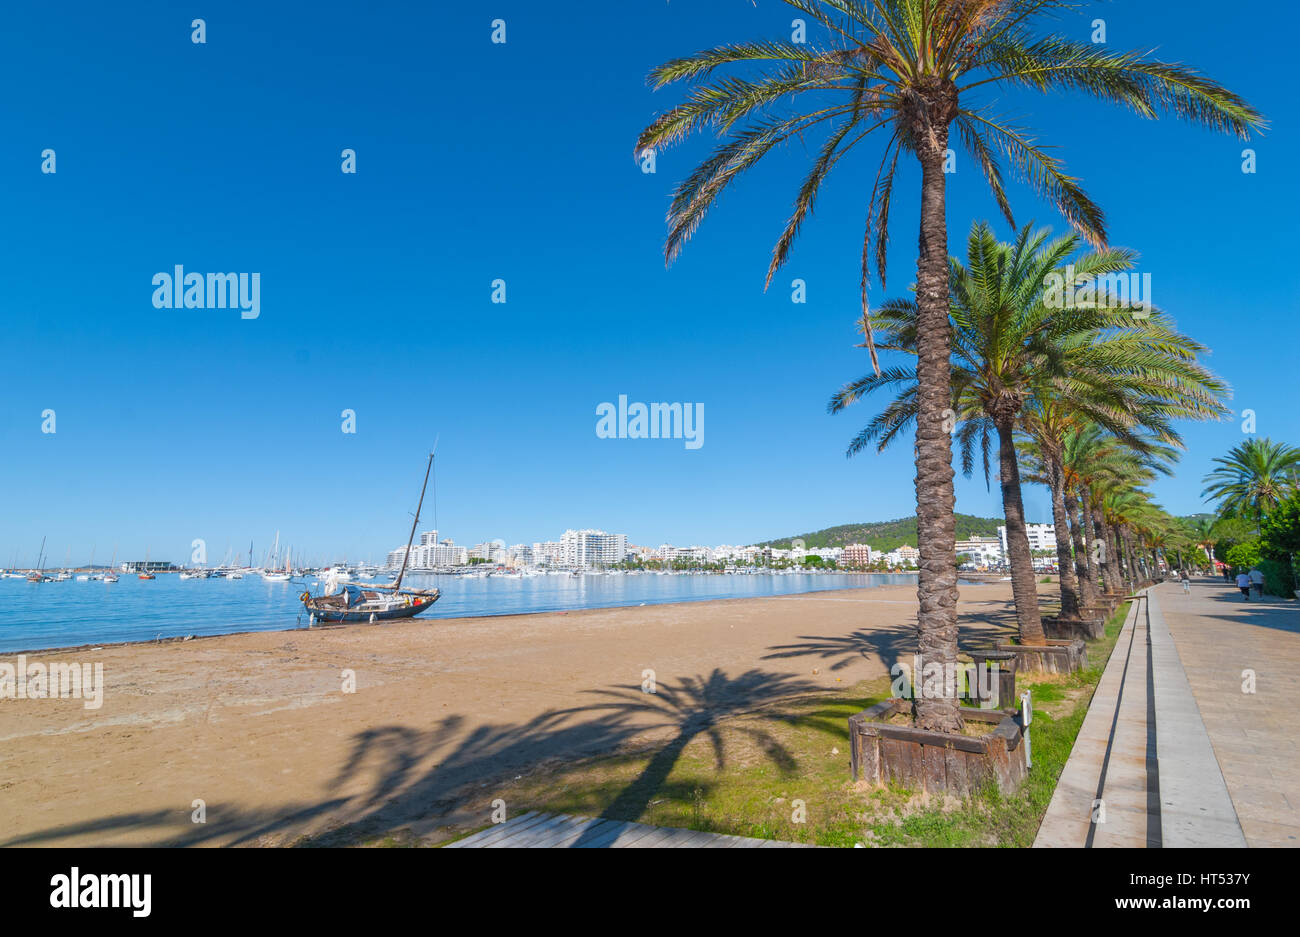 Mid morning sun, along beach sees an abandoned sailboat.  Rows of palm trees line water's edge in Ibiza, St - Stock Image